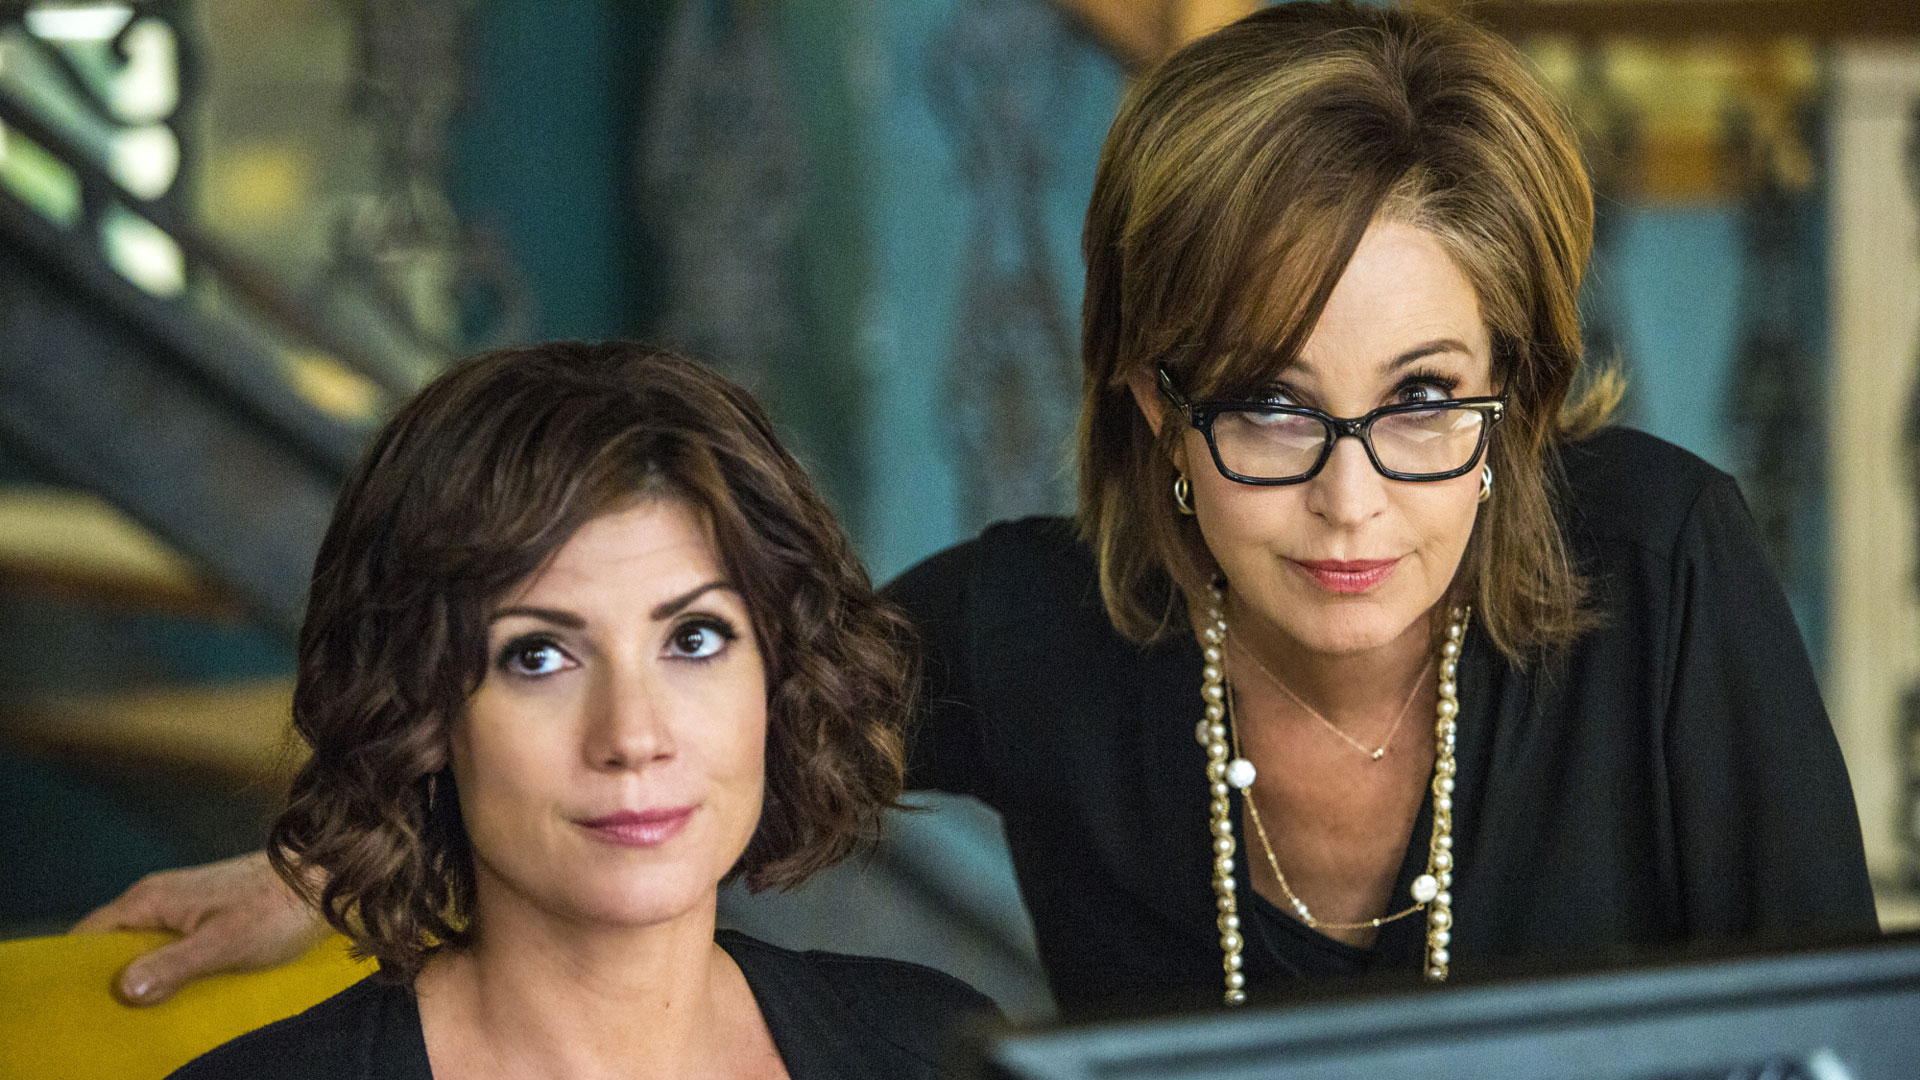 Zoe McLellan as Meredith Brody and Annie Potts as Olivia Brody